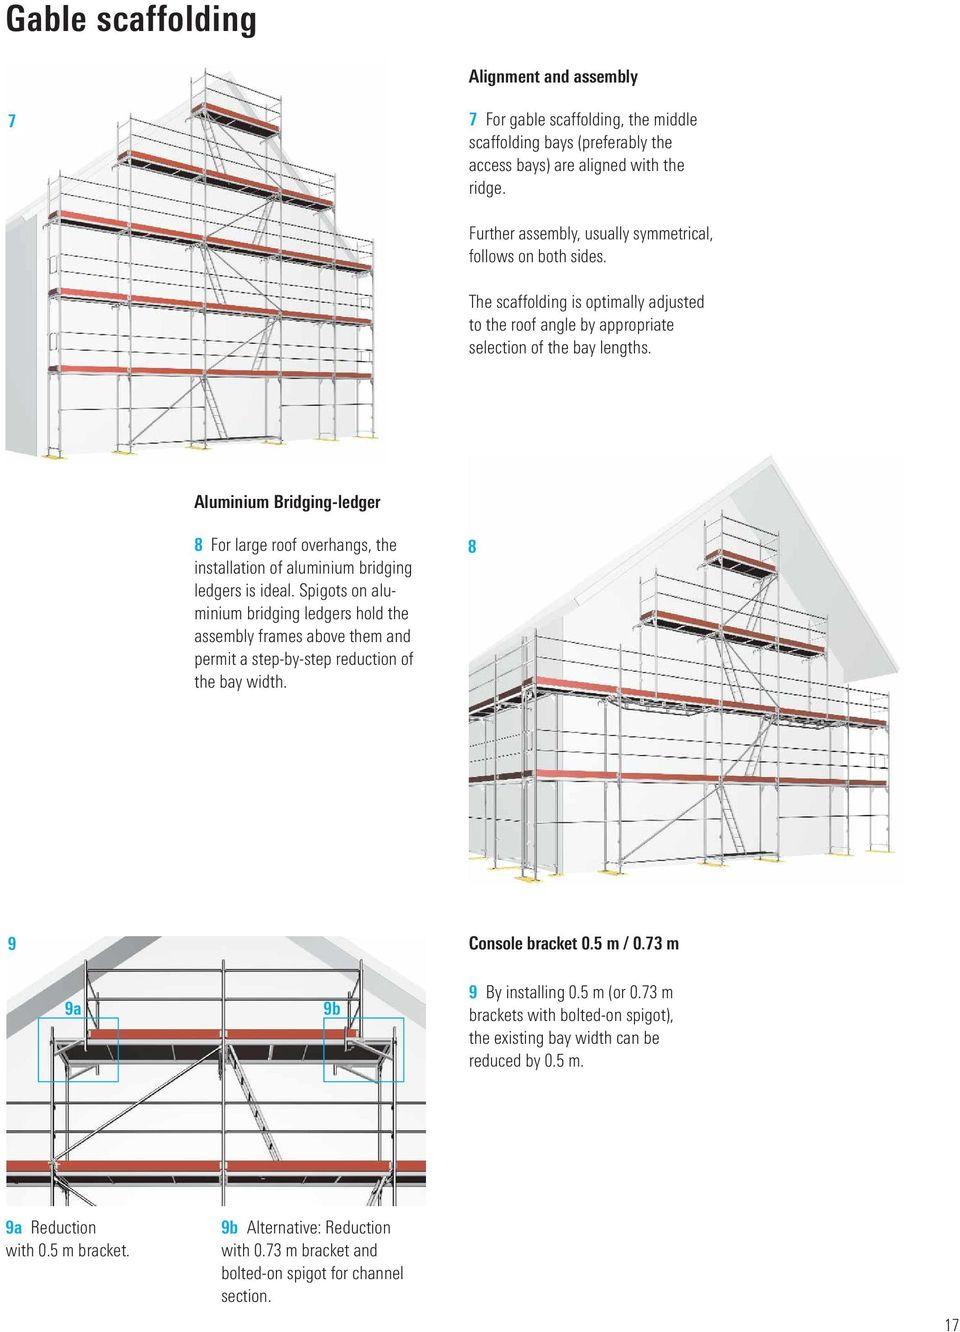 Aluminium Bridging-ledger 8 For large roof overhangs, the installation of aluminium bridging ledgers is ideal.